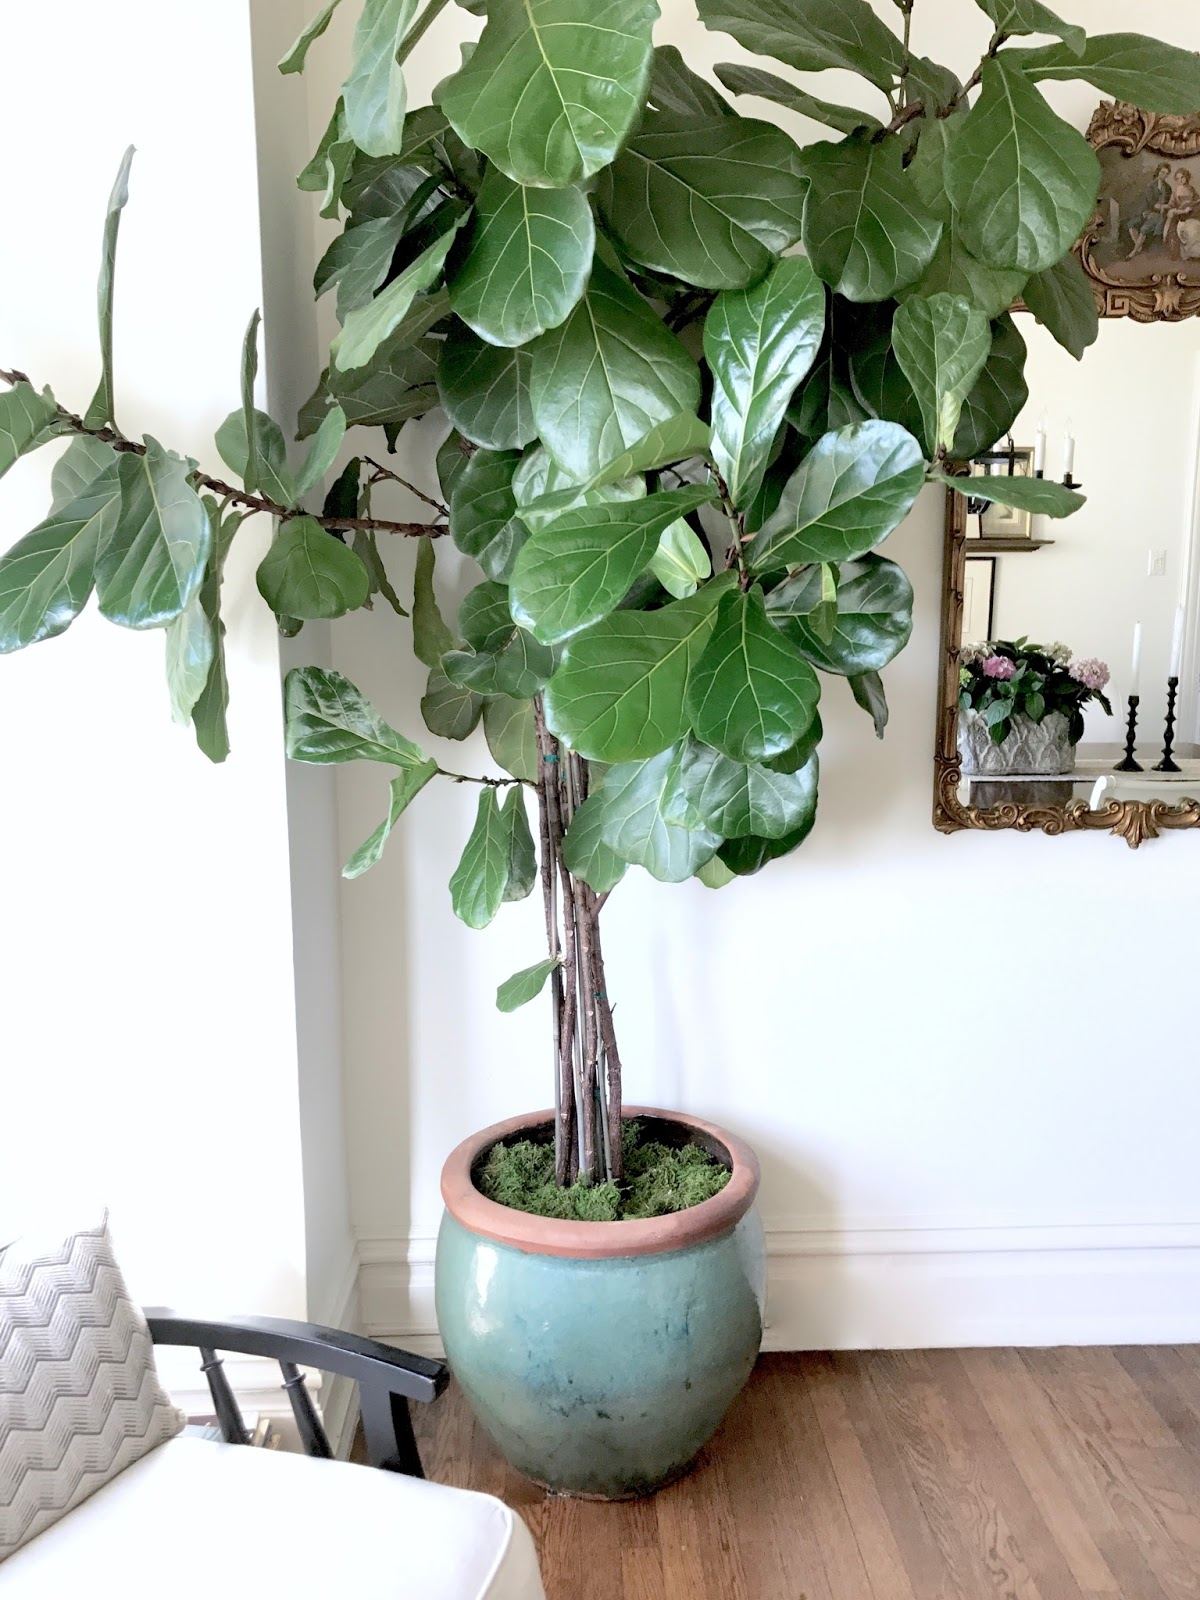 Classic Casual Home 7 Ways To Refresh With Indoor Plants And Some Cool Fashion